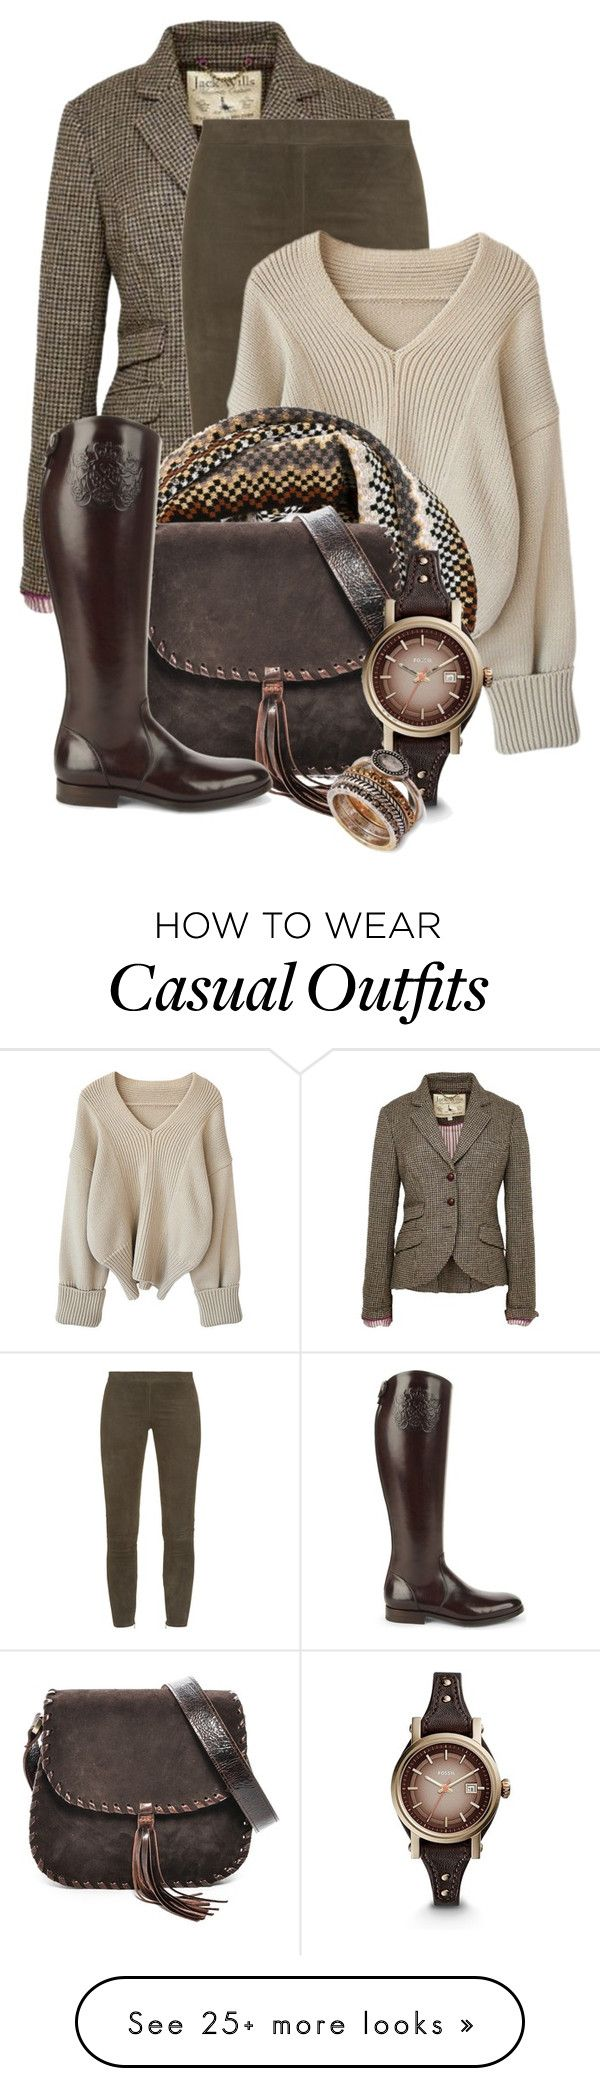 """Casual"" by sugerpop on Polyvore featuring Jack Wills, Vince, Missoni, Carla Mancini, Alberto Fasciani and FOSSIL"